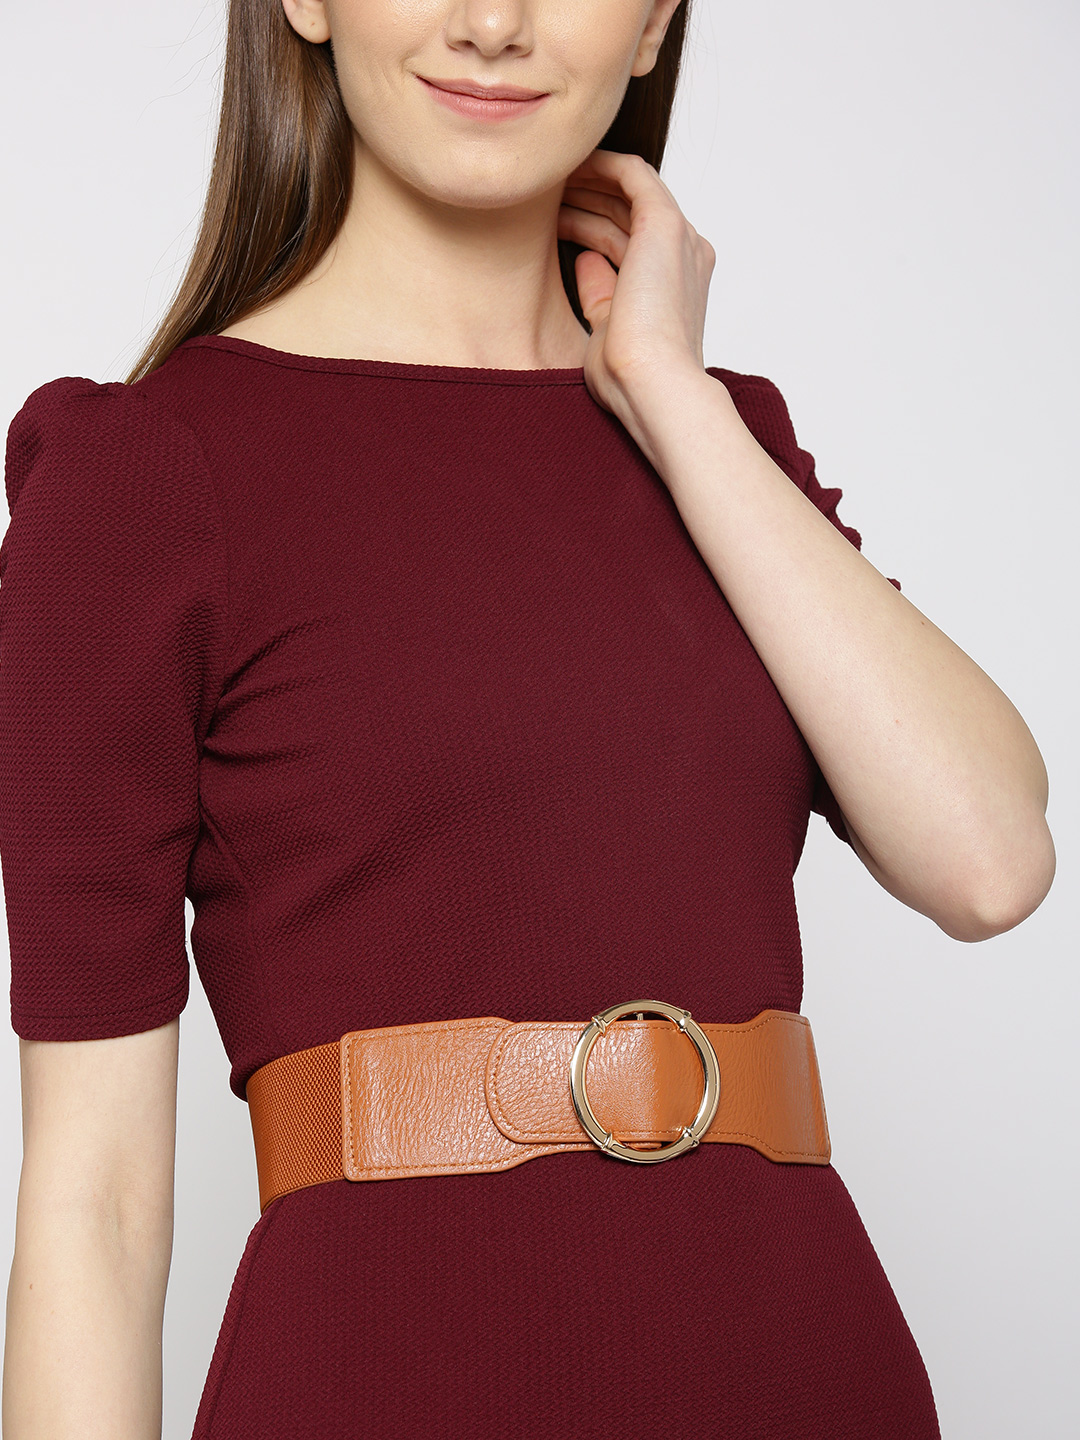 Belts-Brown Stay In Our Circle Waist Belt1